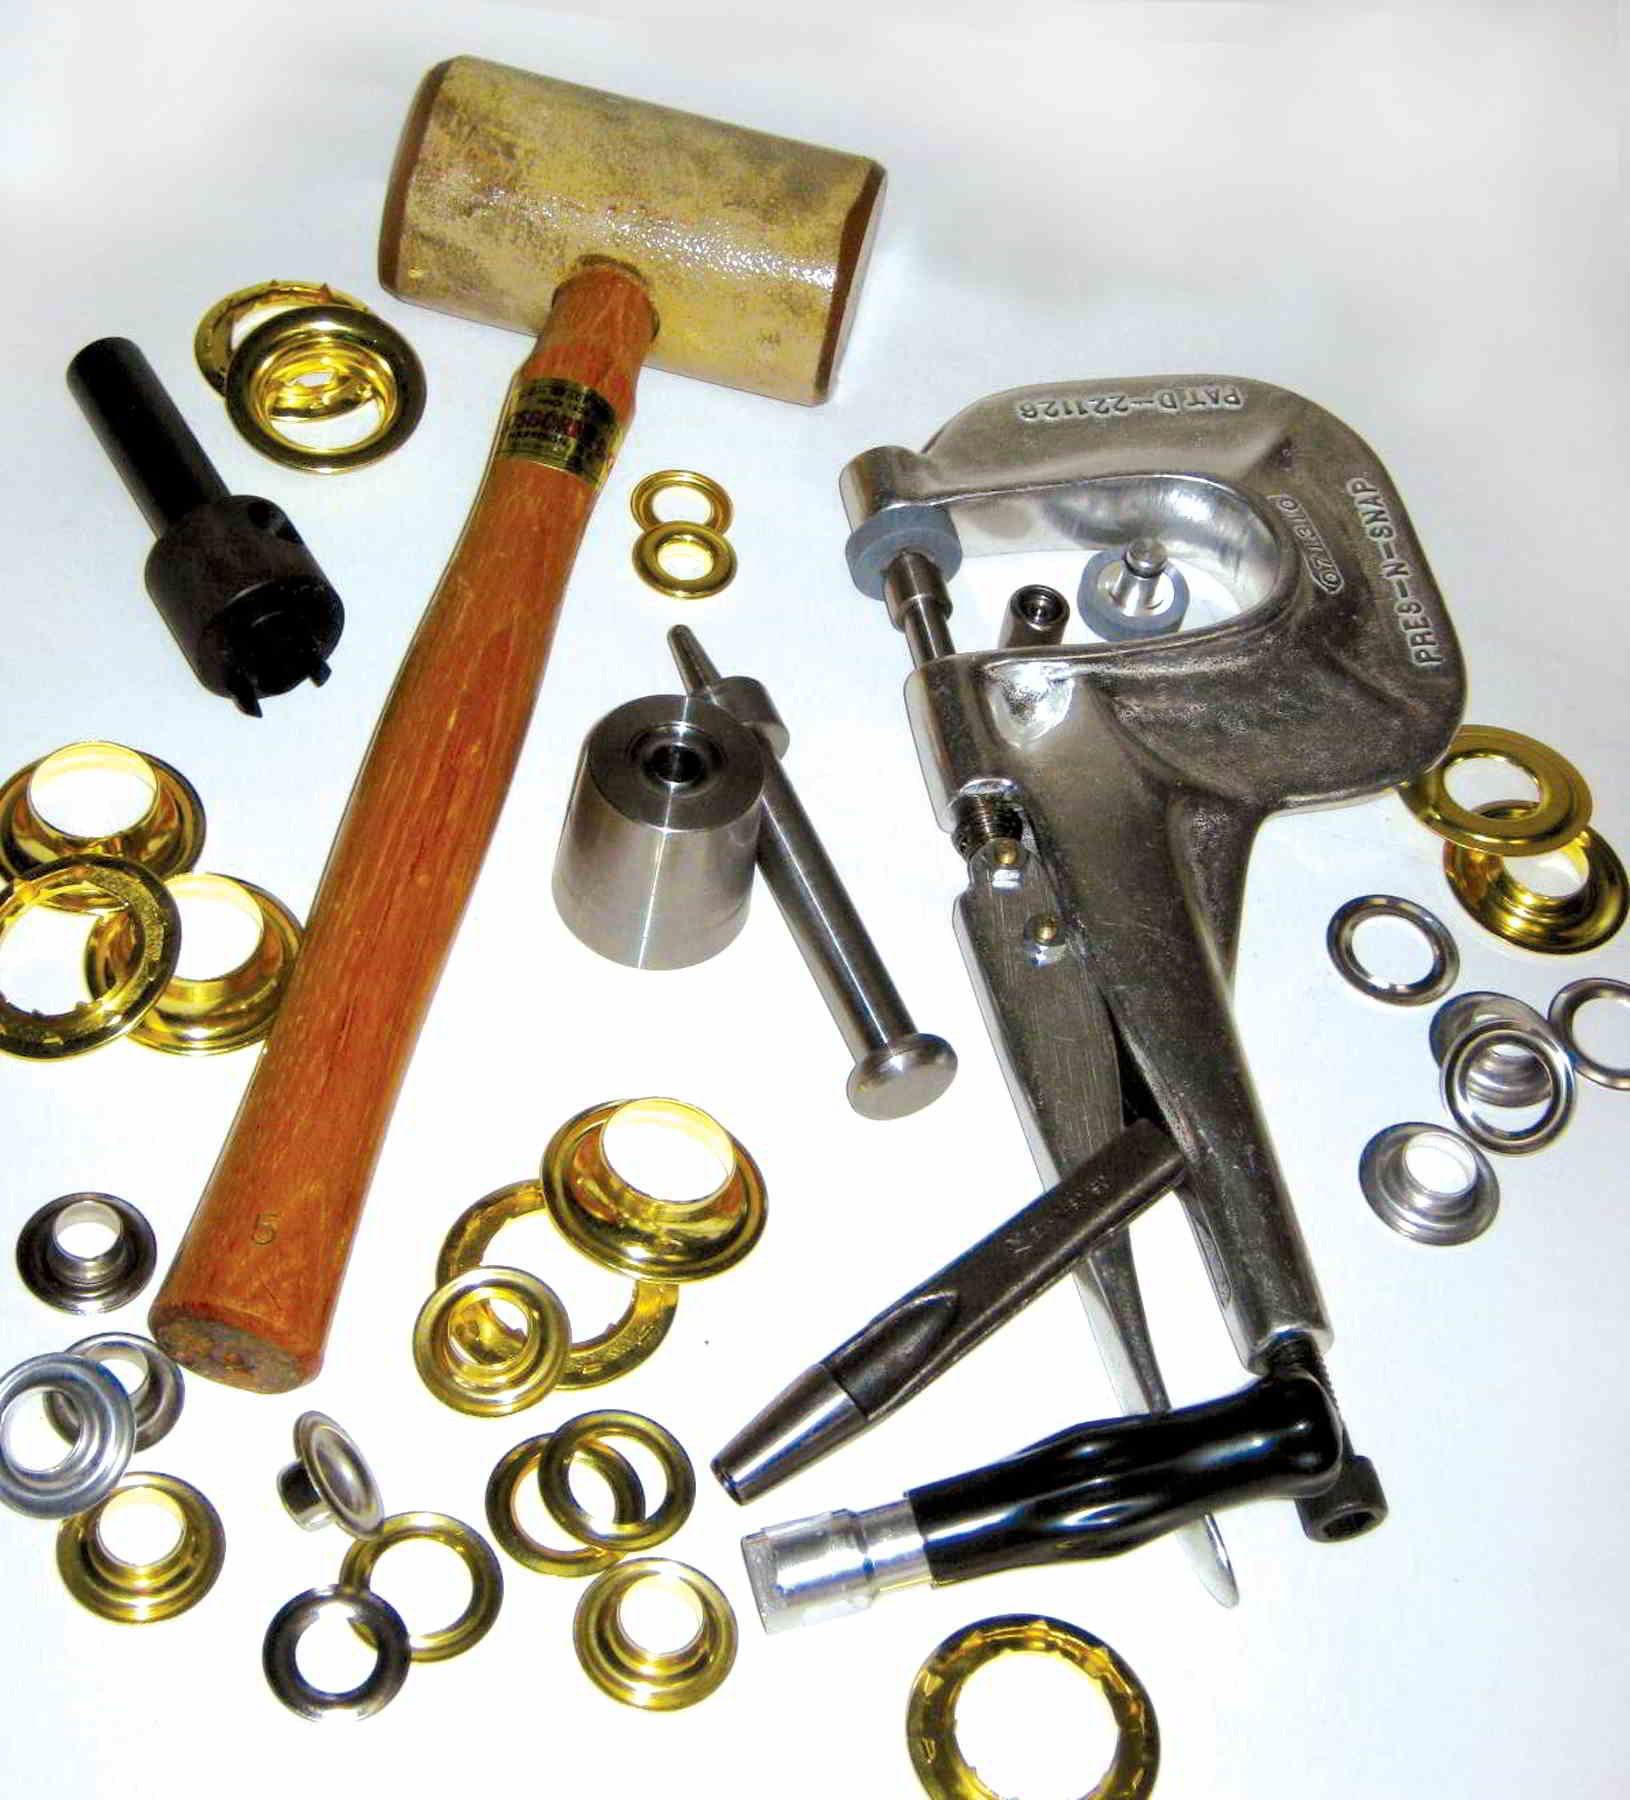 Fasteners and Setting Tools